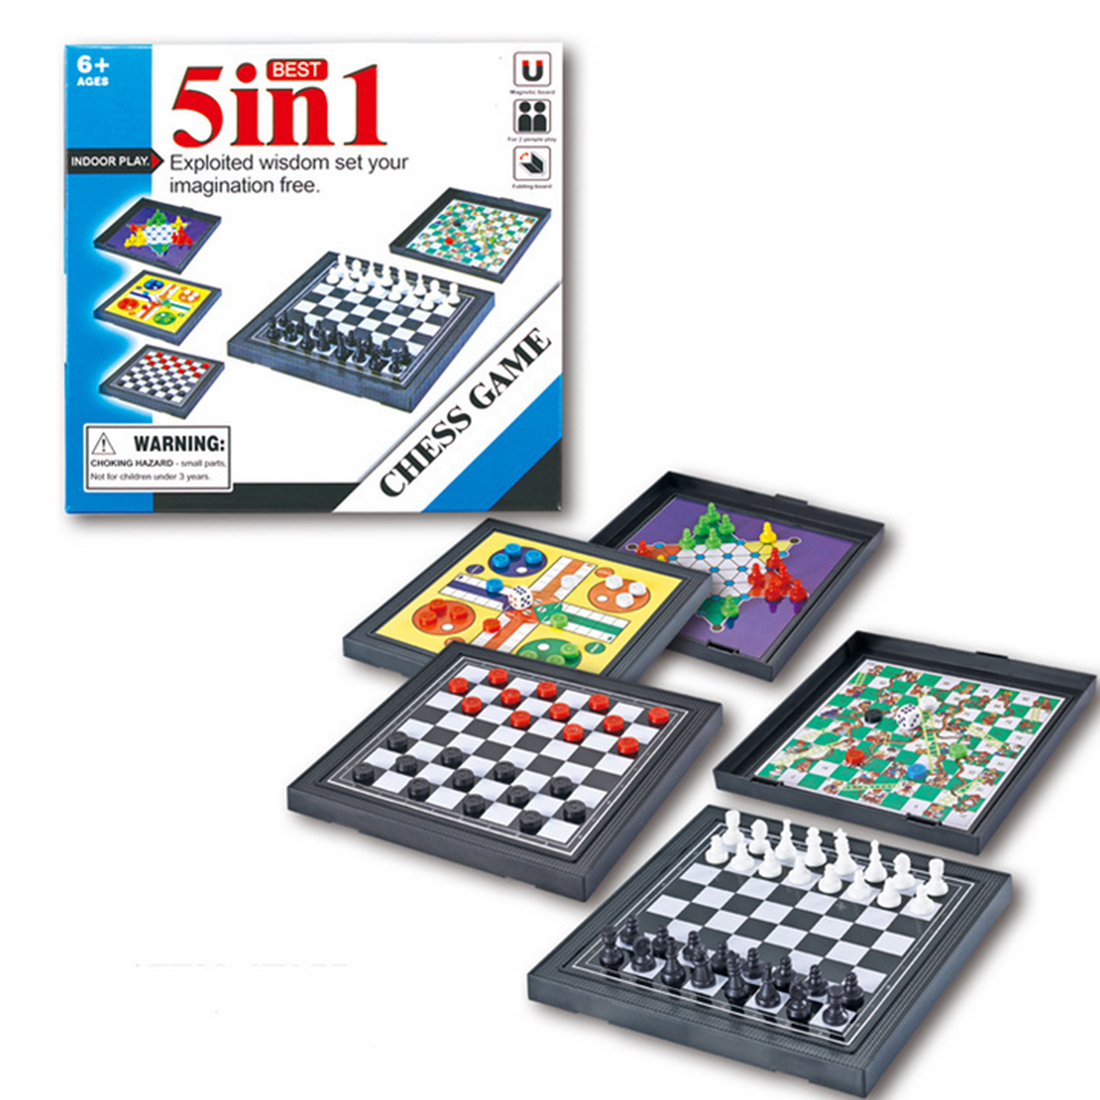 5 In 1 Chessmen Chinese Checkers Magnetic Board Game Flying Chess Kids Classic Flight Puzzle Game Set For Friend Children Gift5 In 1 Chessmen Chinese Checkers Magnetic Board Game Flying Chess Kids Classic Flight Puzzle Game Set For Friend Children Gift